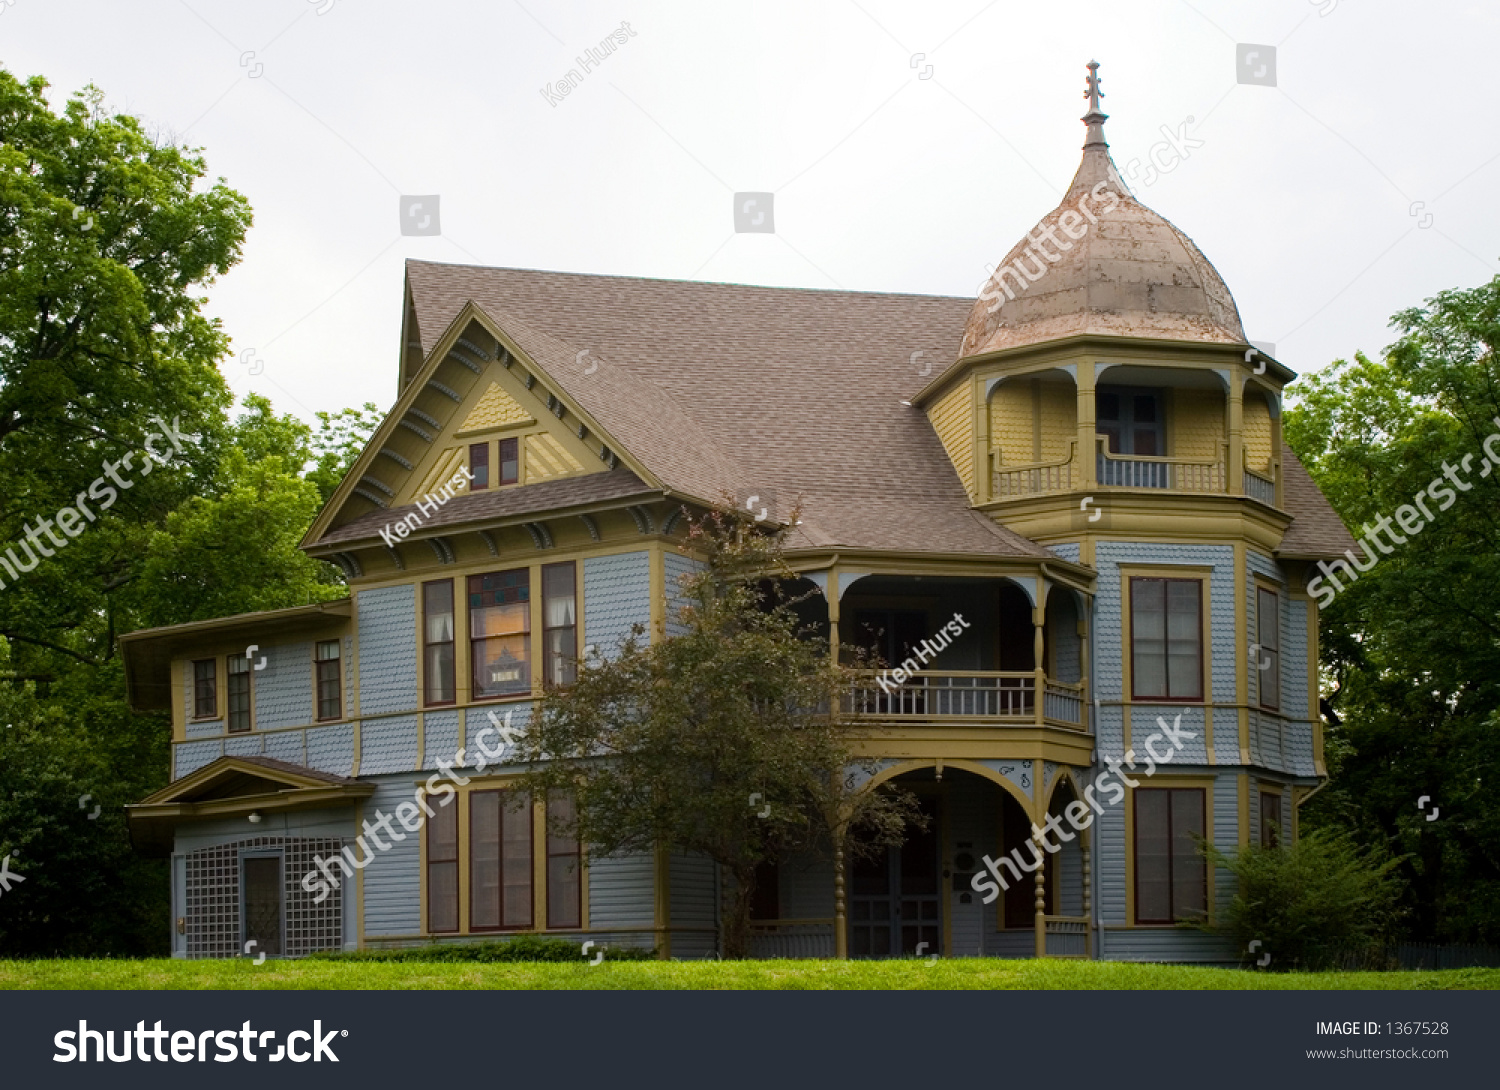 Gothic Victorian Style House Stock Photo 1367528 - Shutterstock